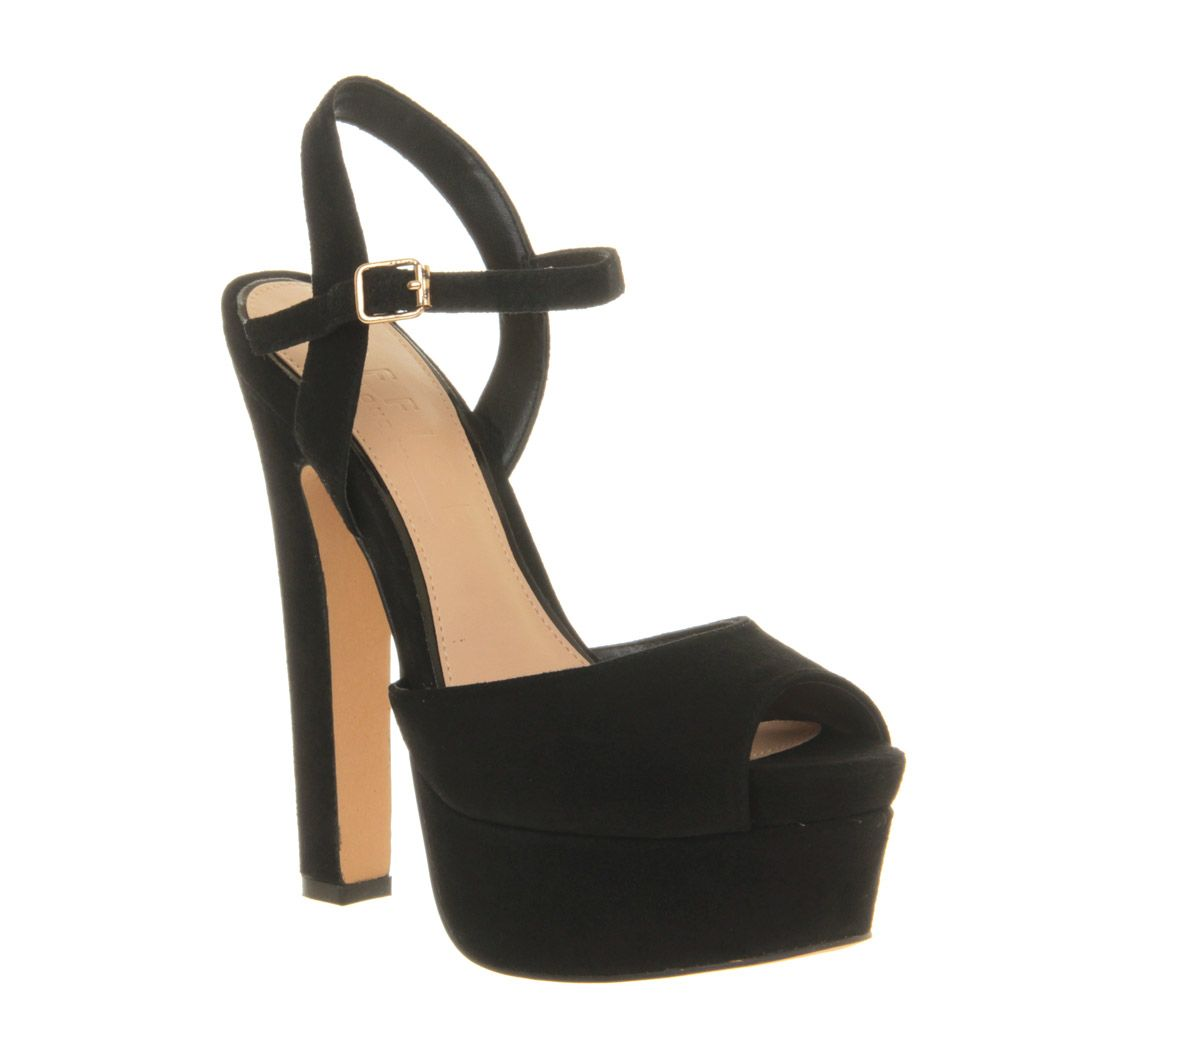 Right on time suede peeptoe platform shoes